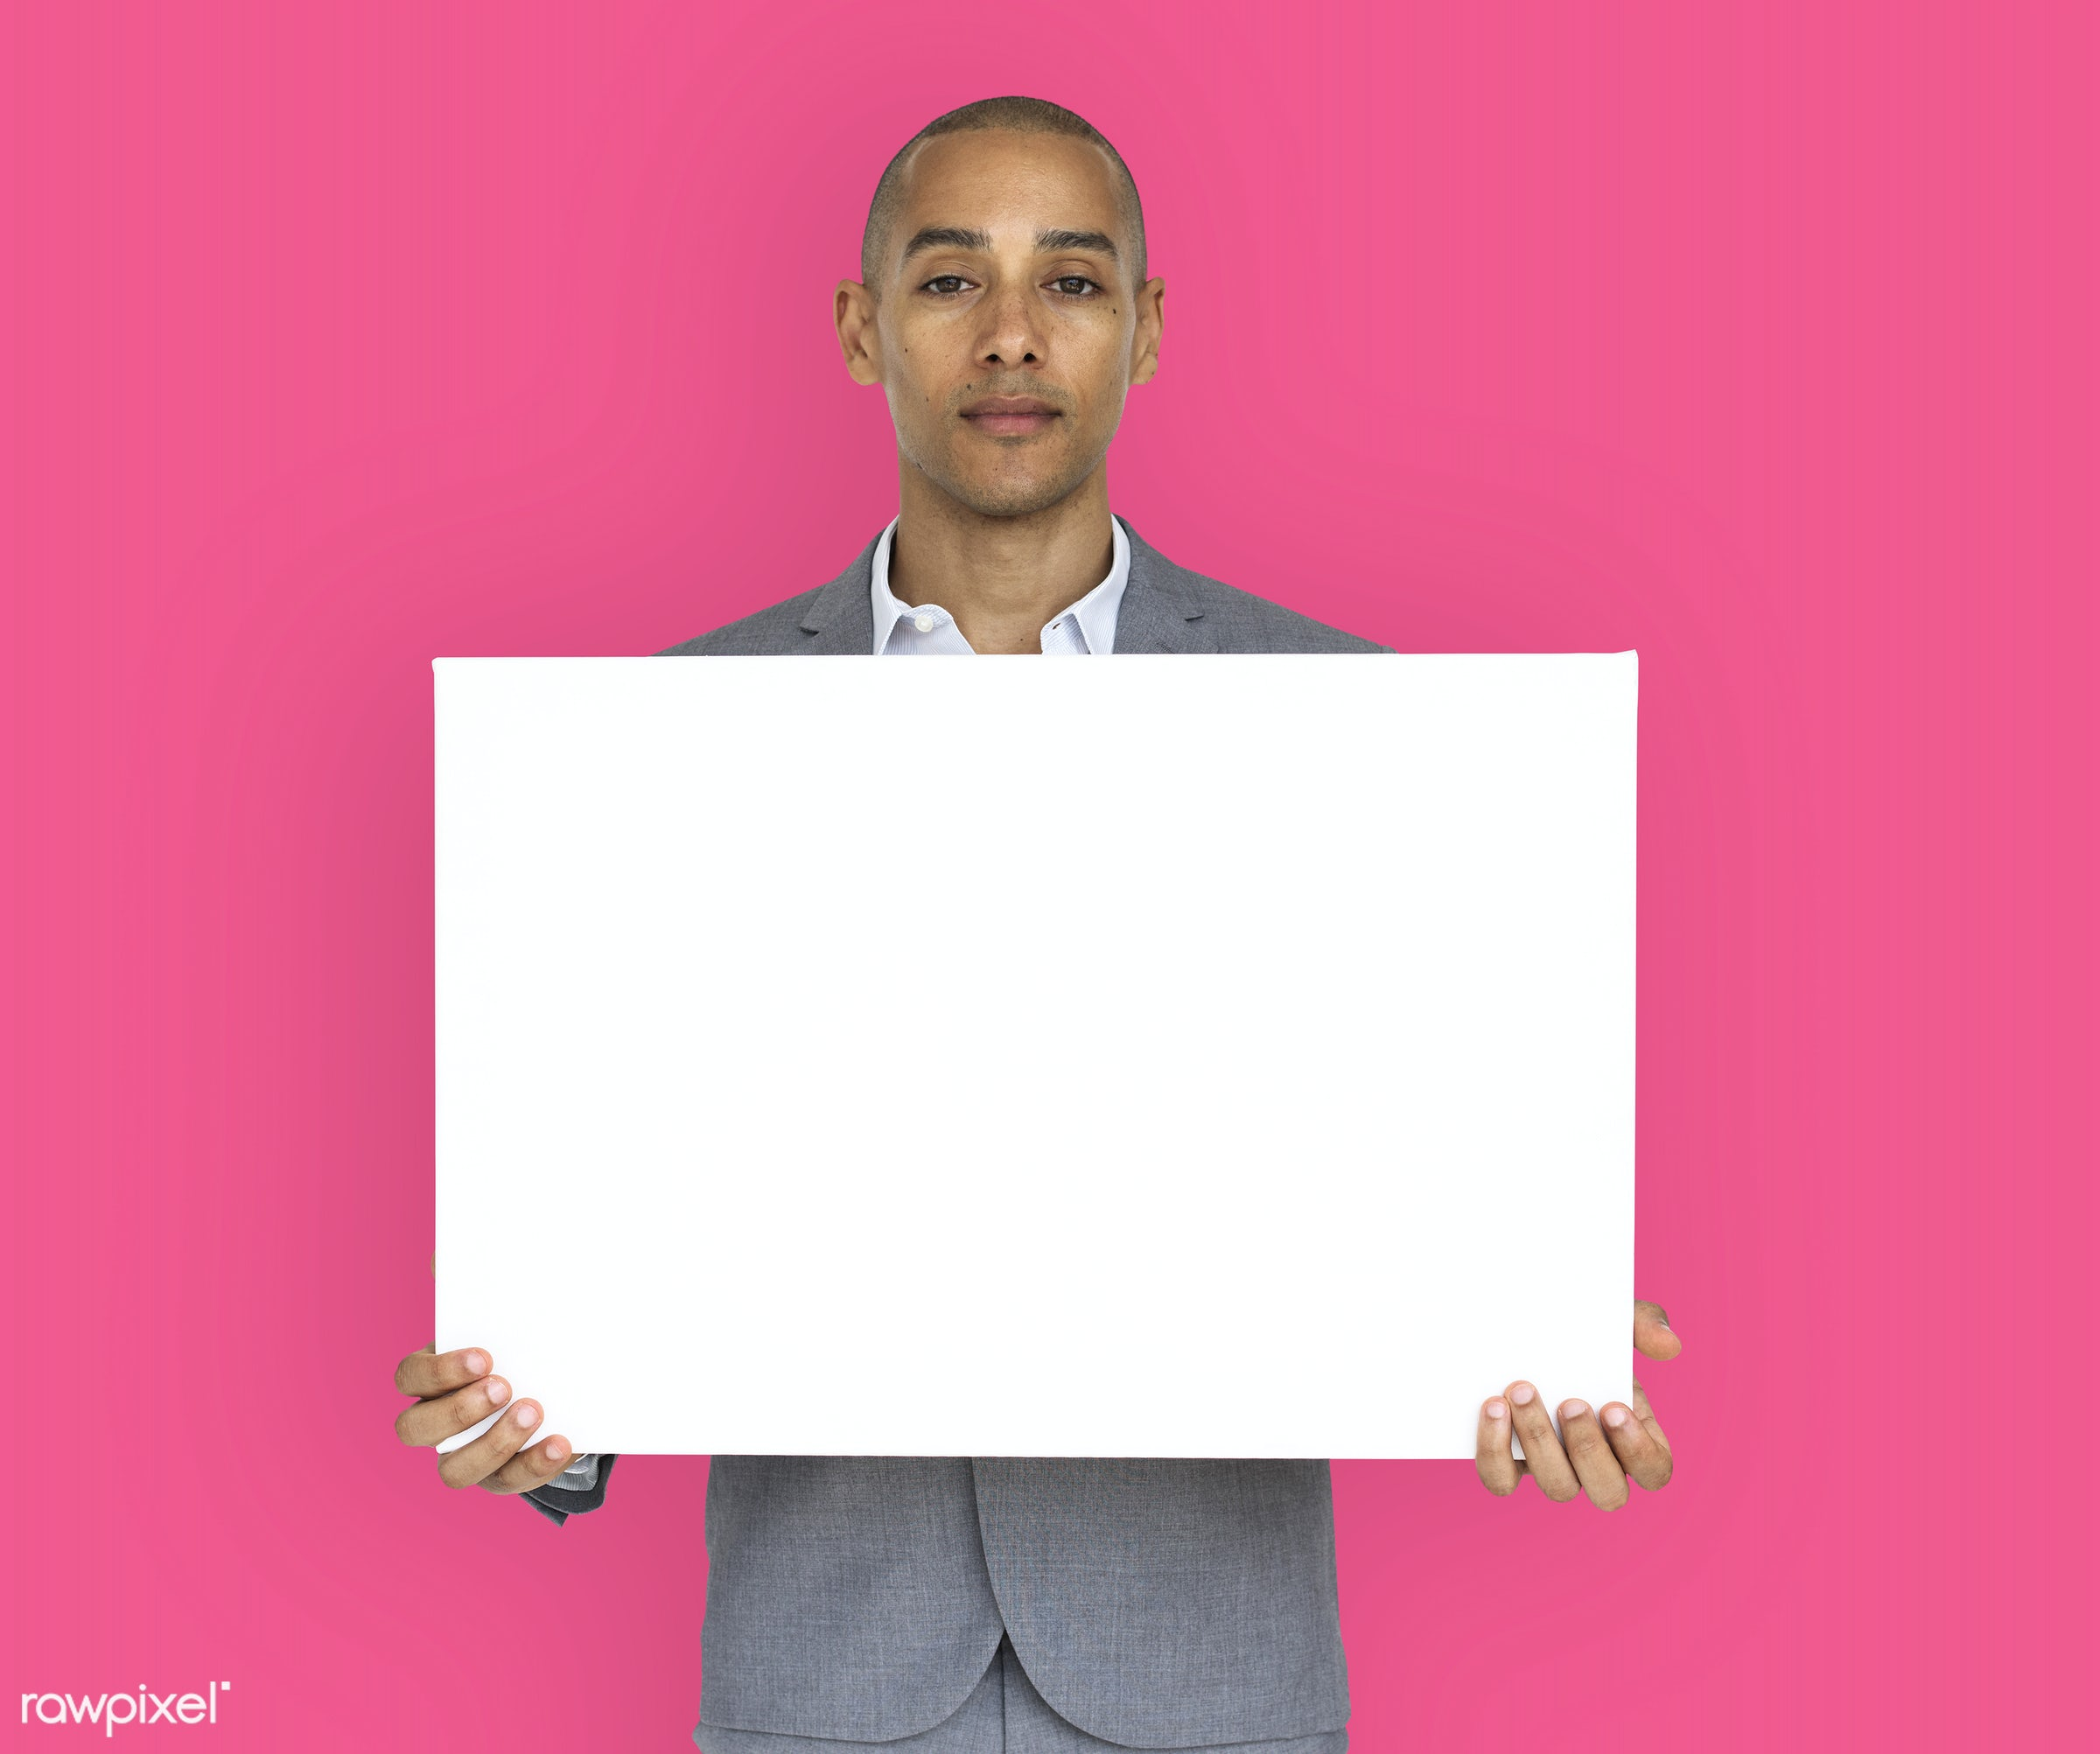 expression, studio, copy space, person, holding, people, business, placard, businessman, pink, mixed race, man, banner,...